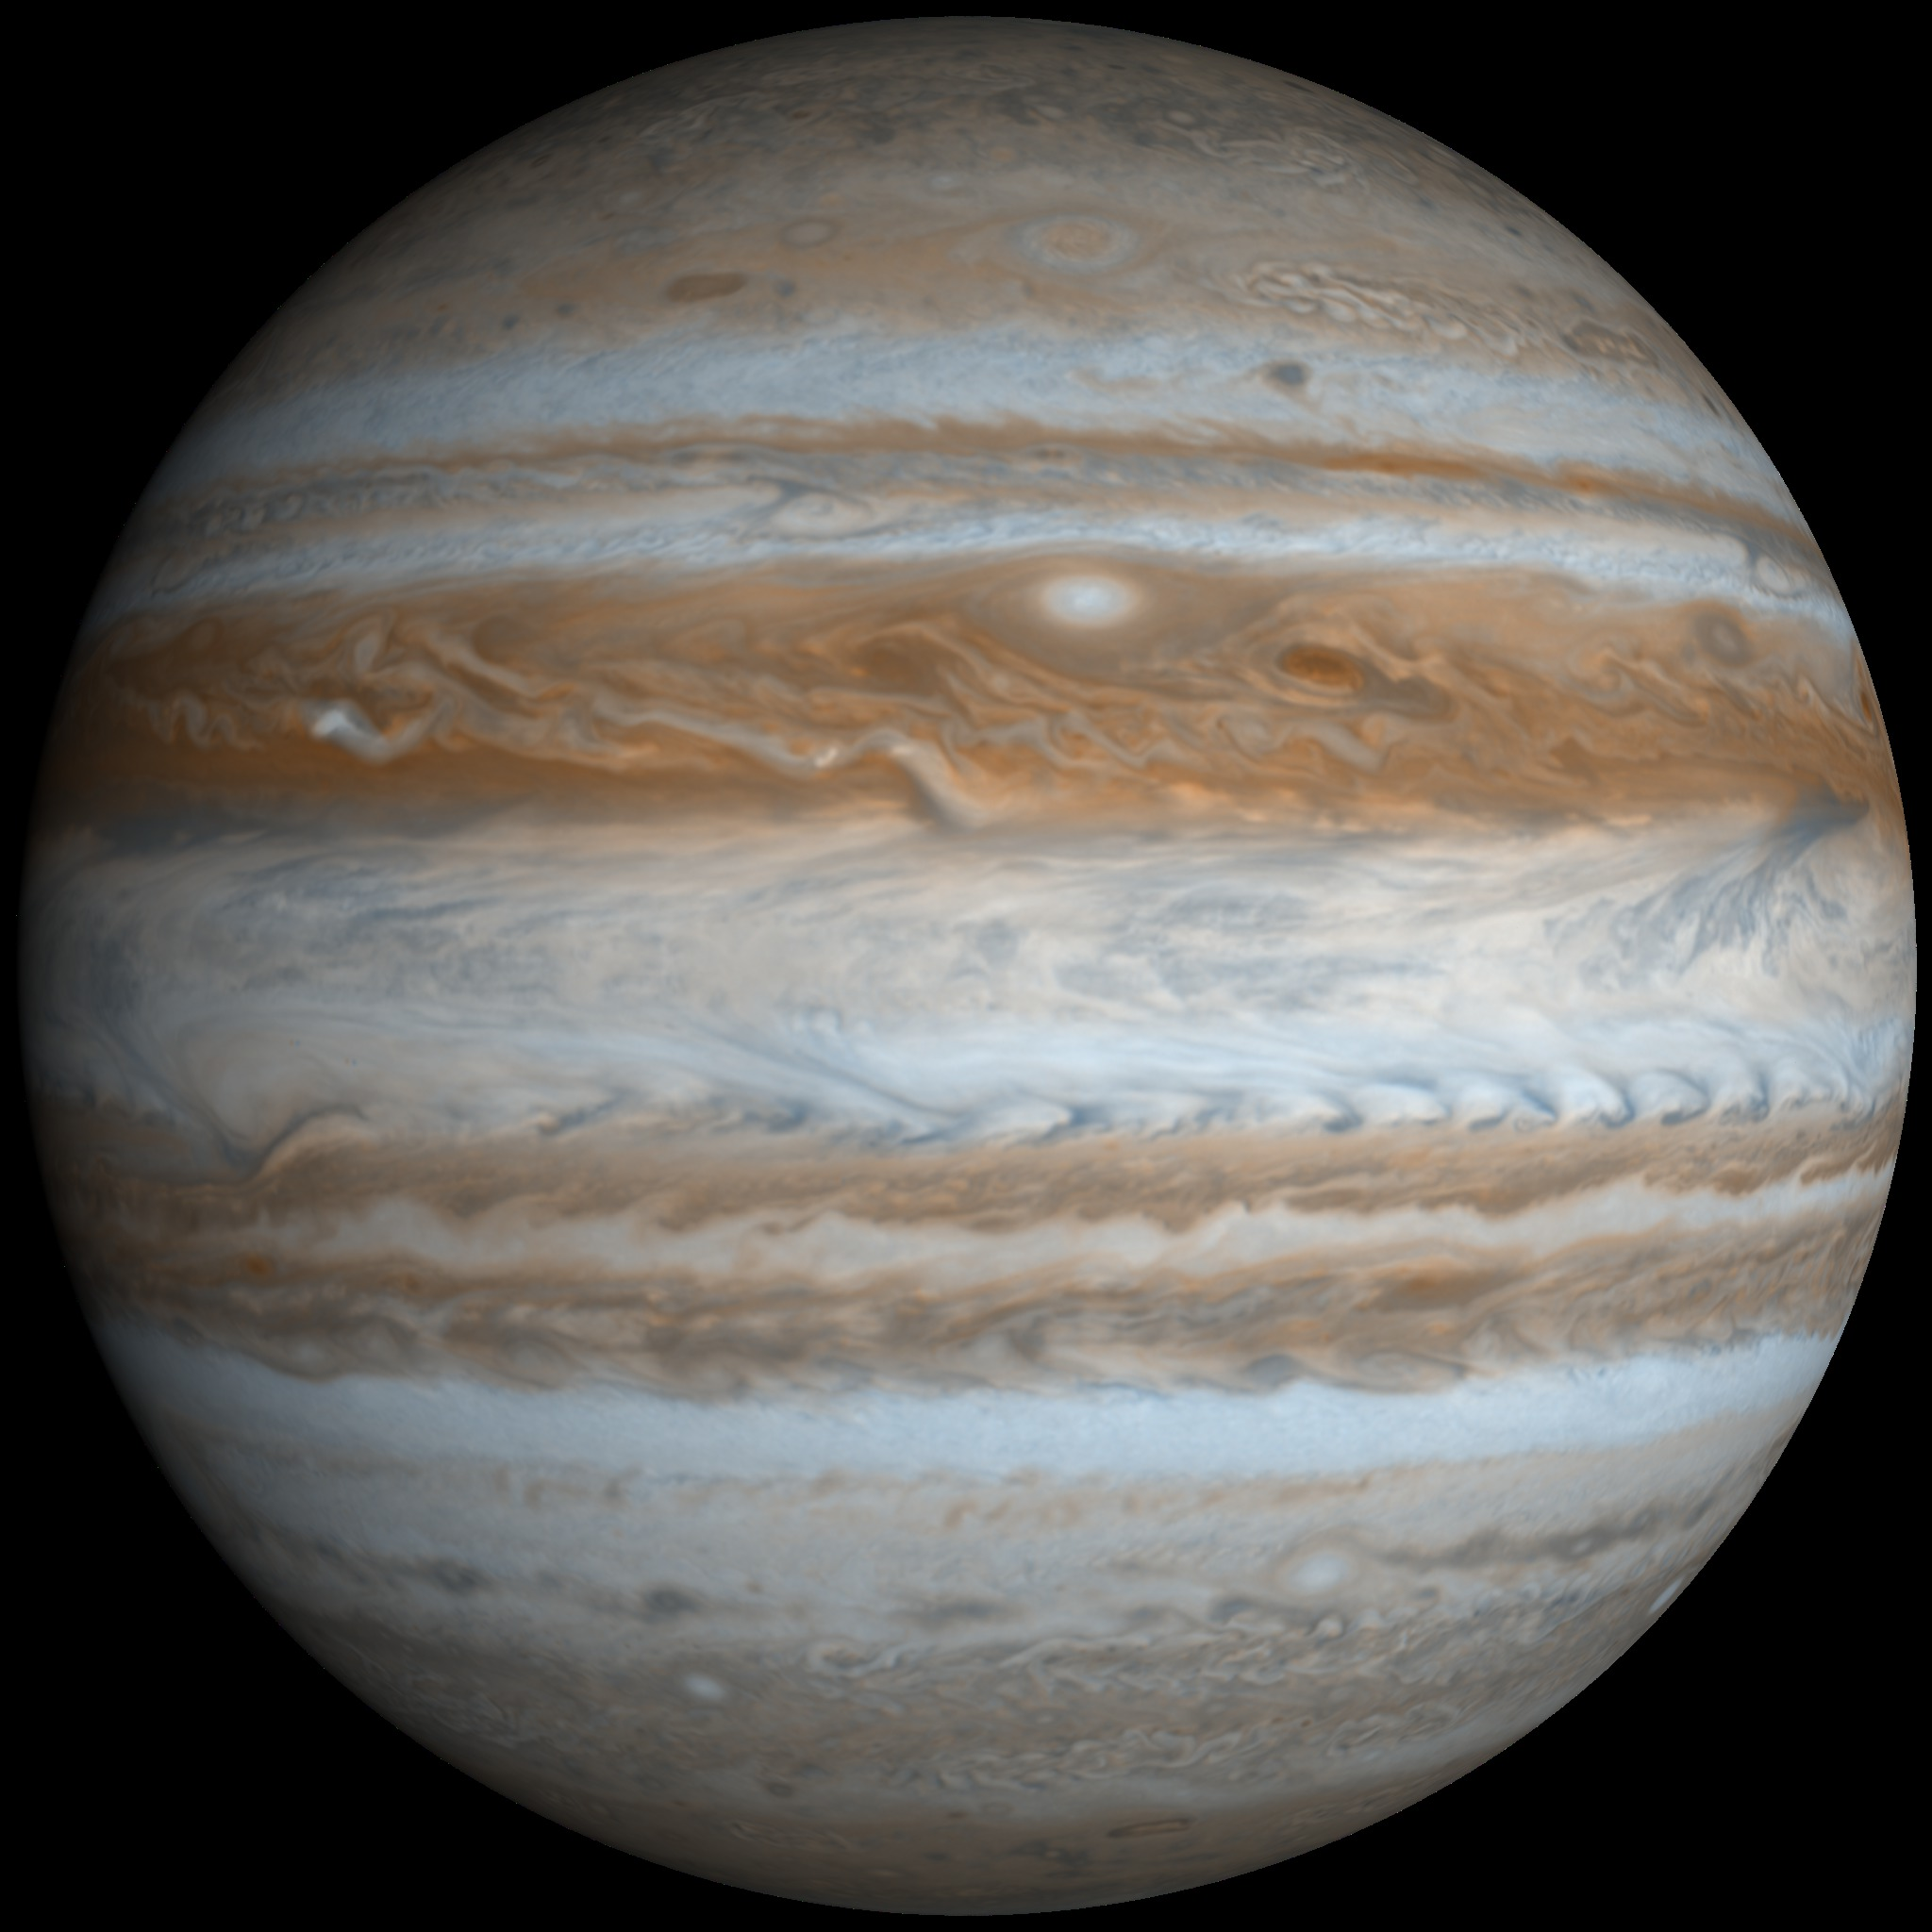 Real Pictures Of Jupiter The Planet New study sugge...